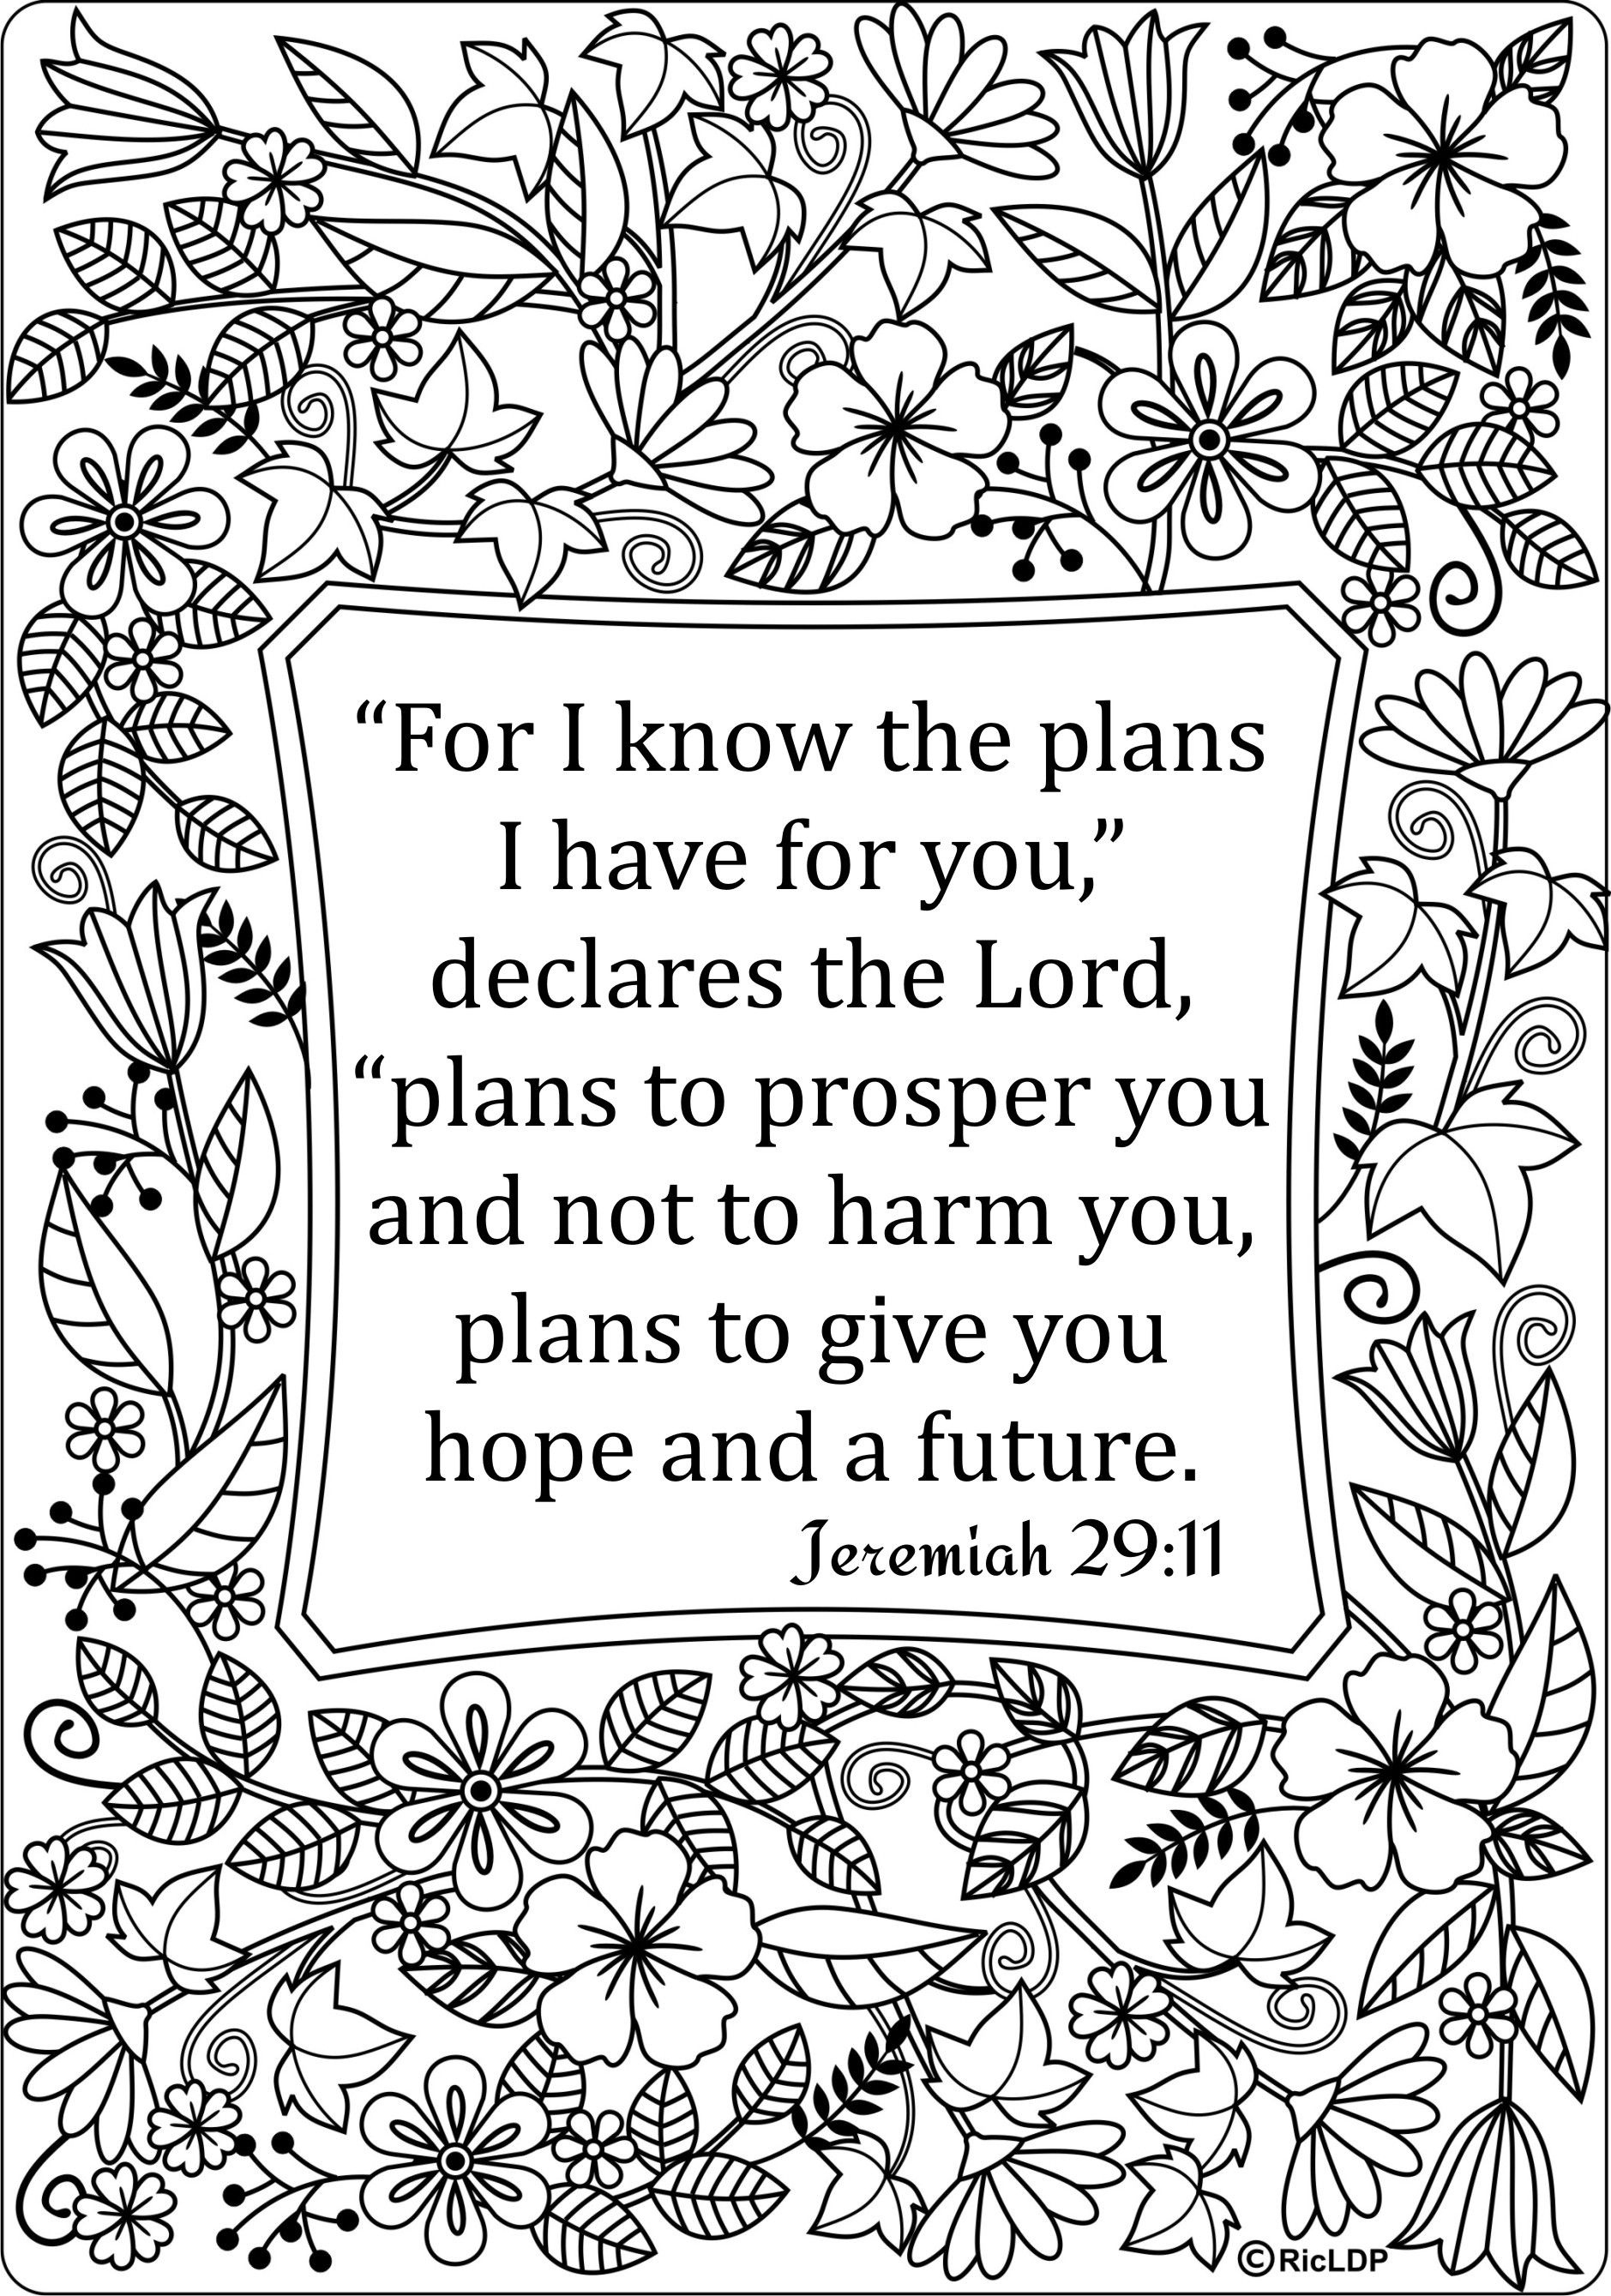 15 Bible Verses Coloring Pages   Coloring Pages   Bible Verse - Free Printable Bible Coloring Pages With Verses